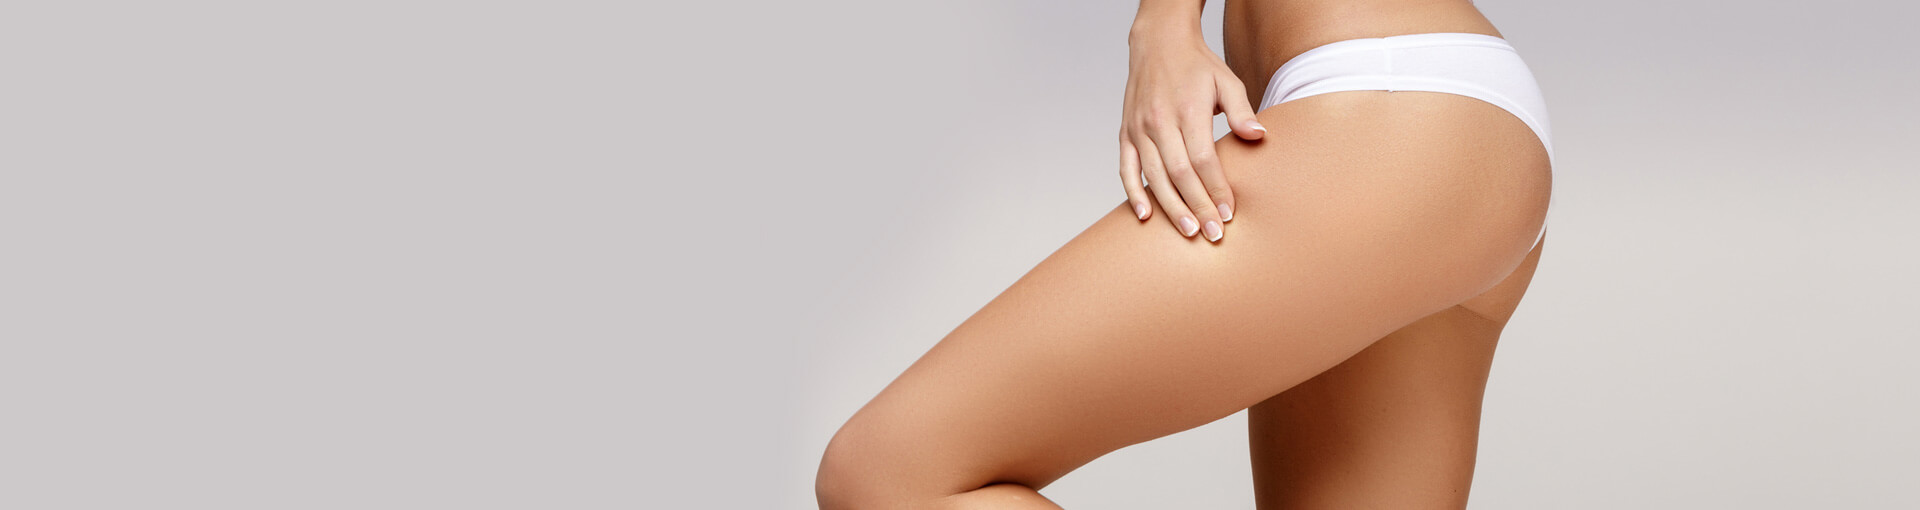 Laser Hair Removal - drs skin care